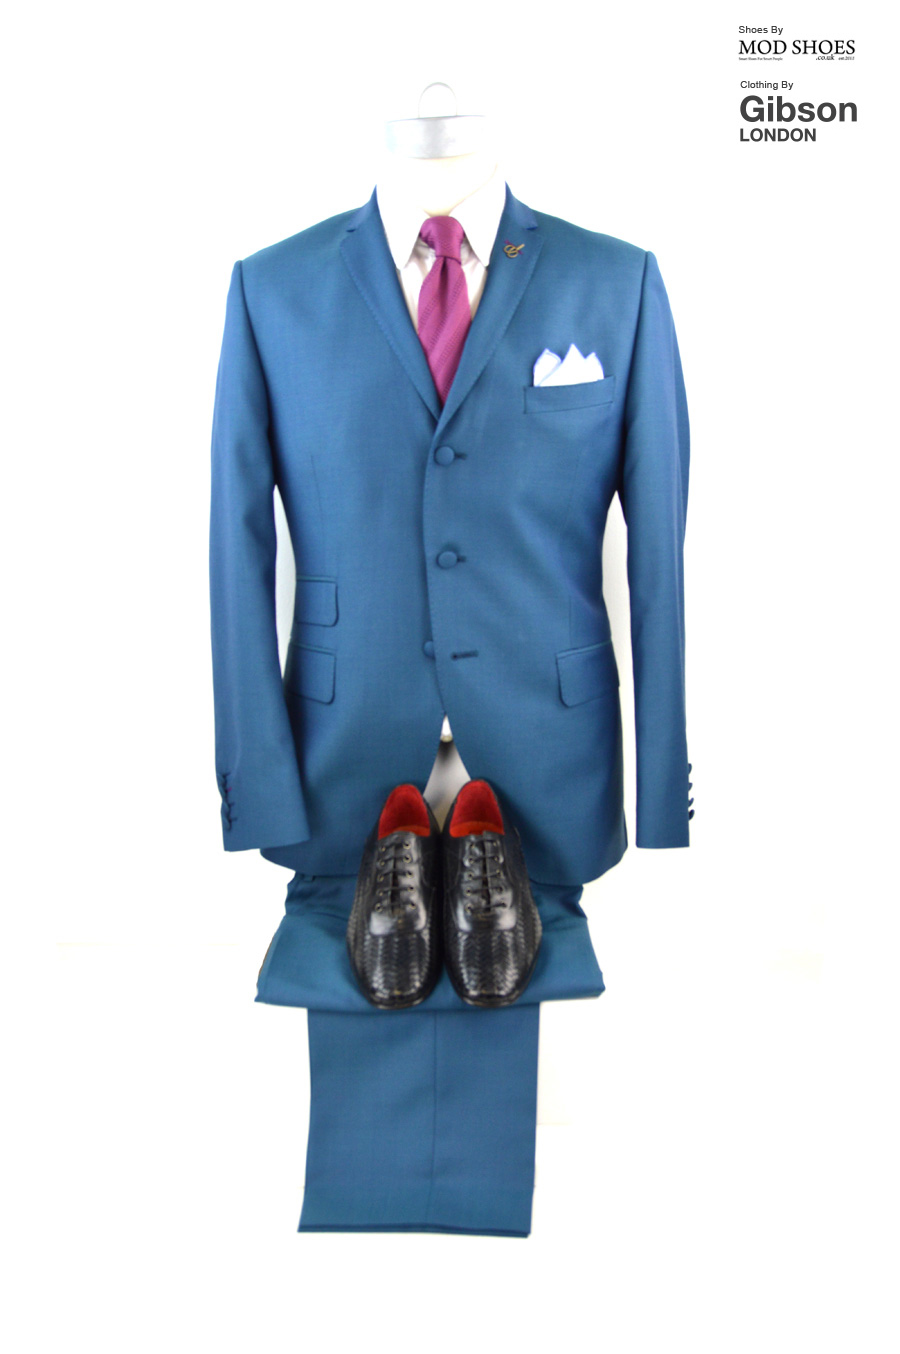 modshoes-weavers-with-gibson-clothing-mod-suit-02